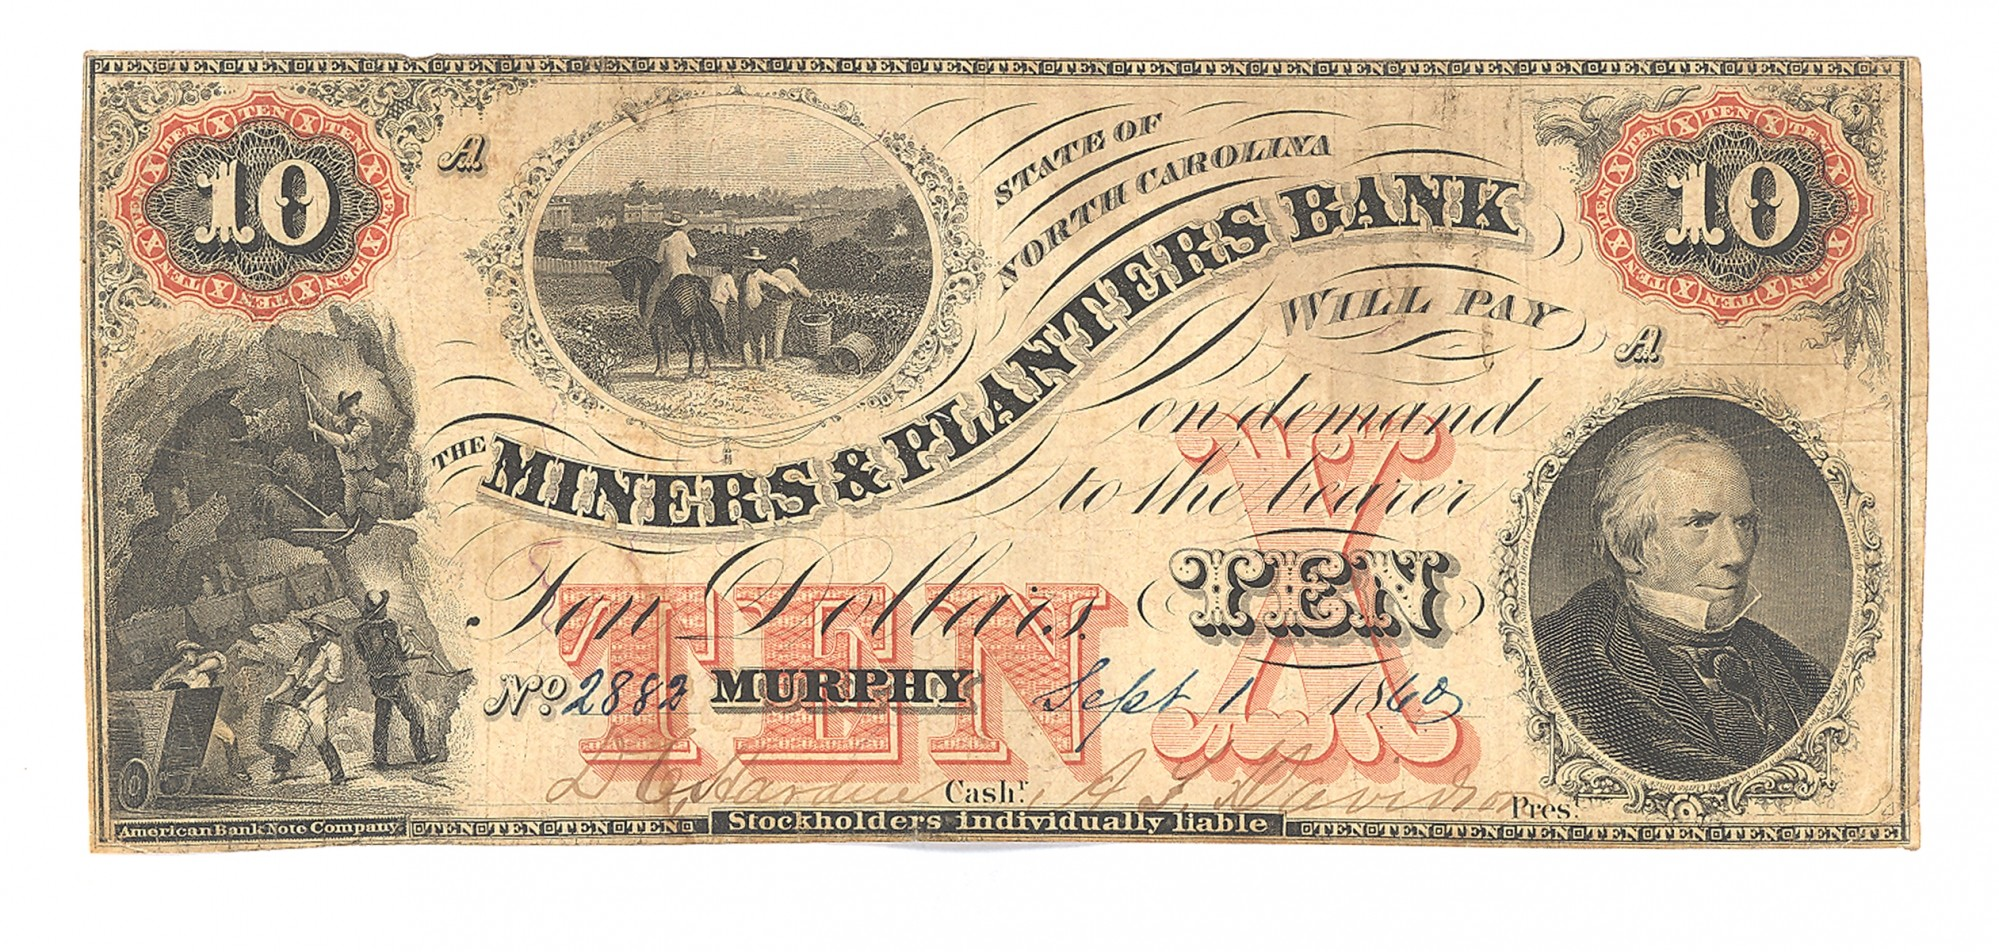 MINERS AND PLANTERS BANK, NORTH CAROLINA $10 NOTE